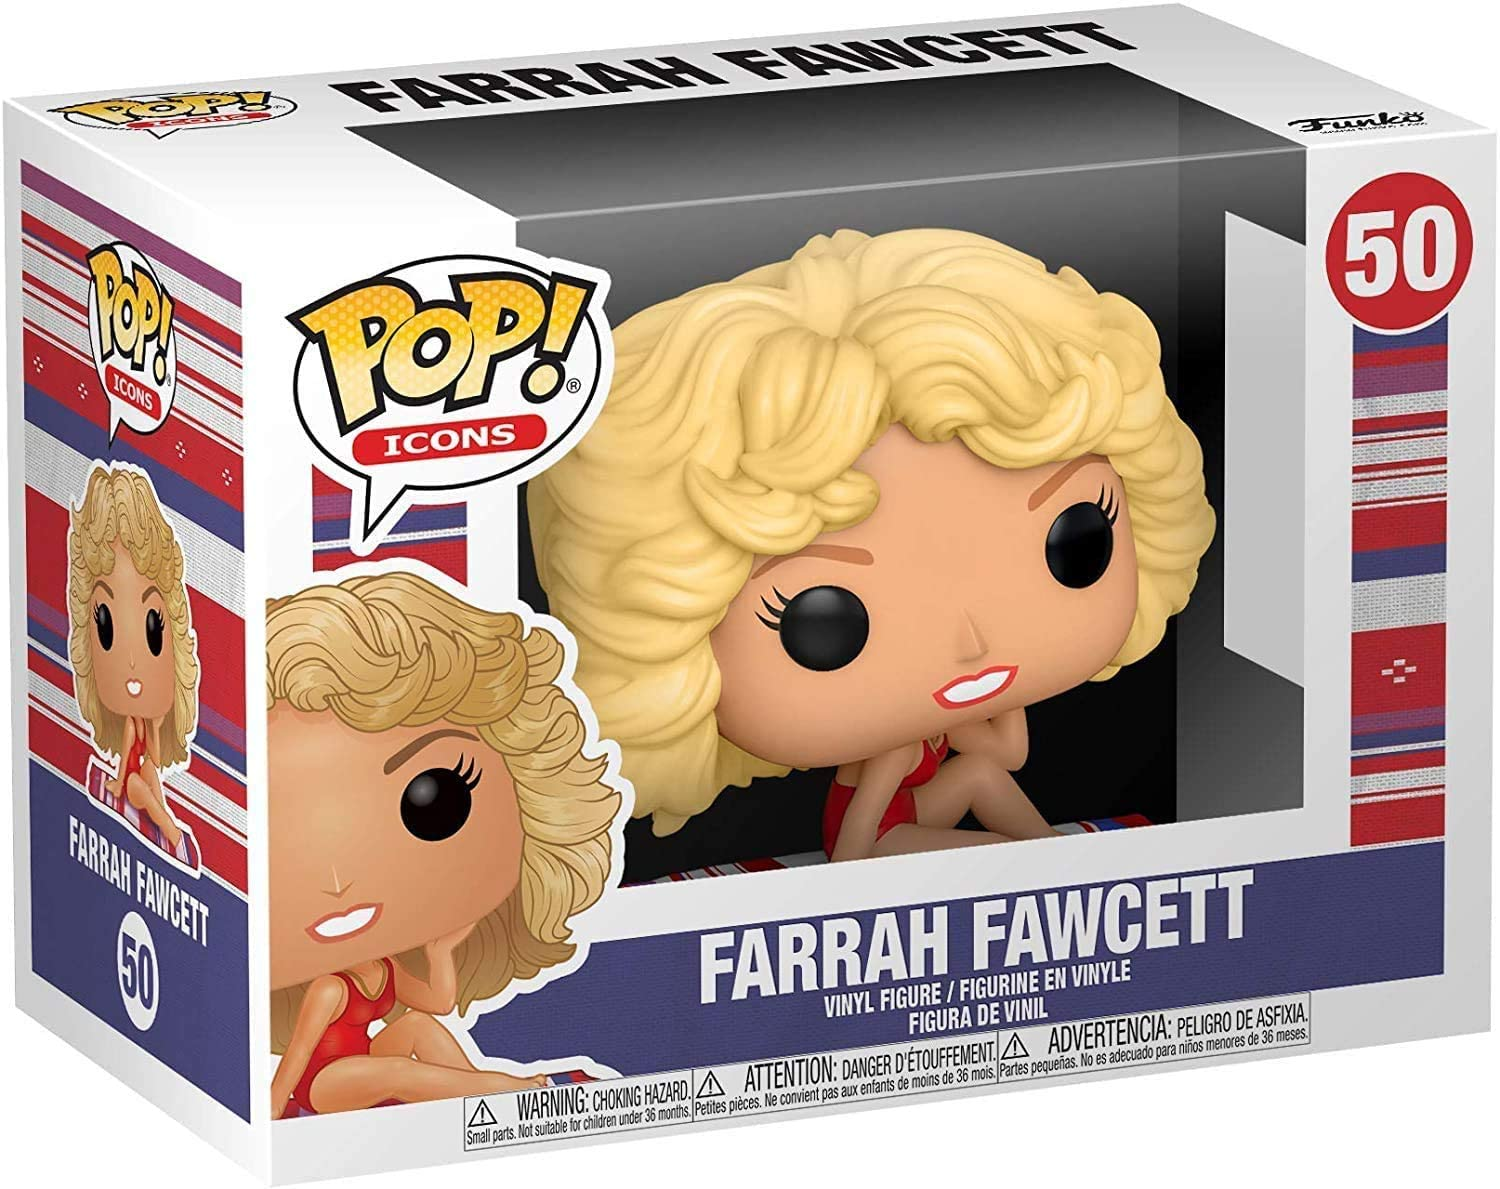 Funko Pop! Icons #50 - Farrah Fawcett Vinyl Figure